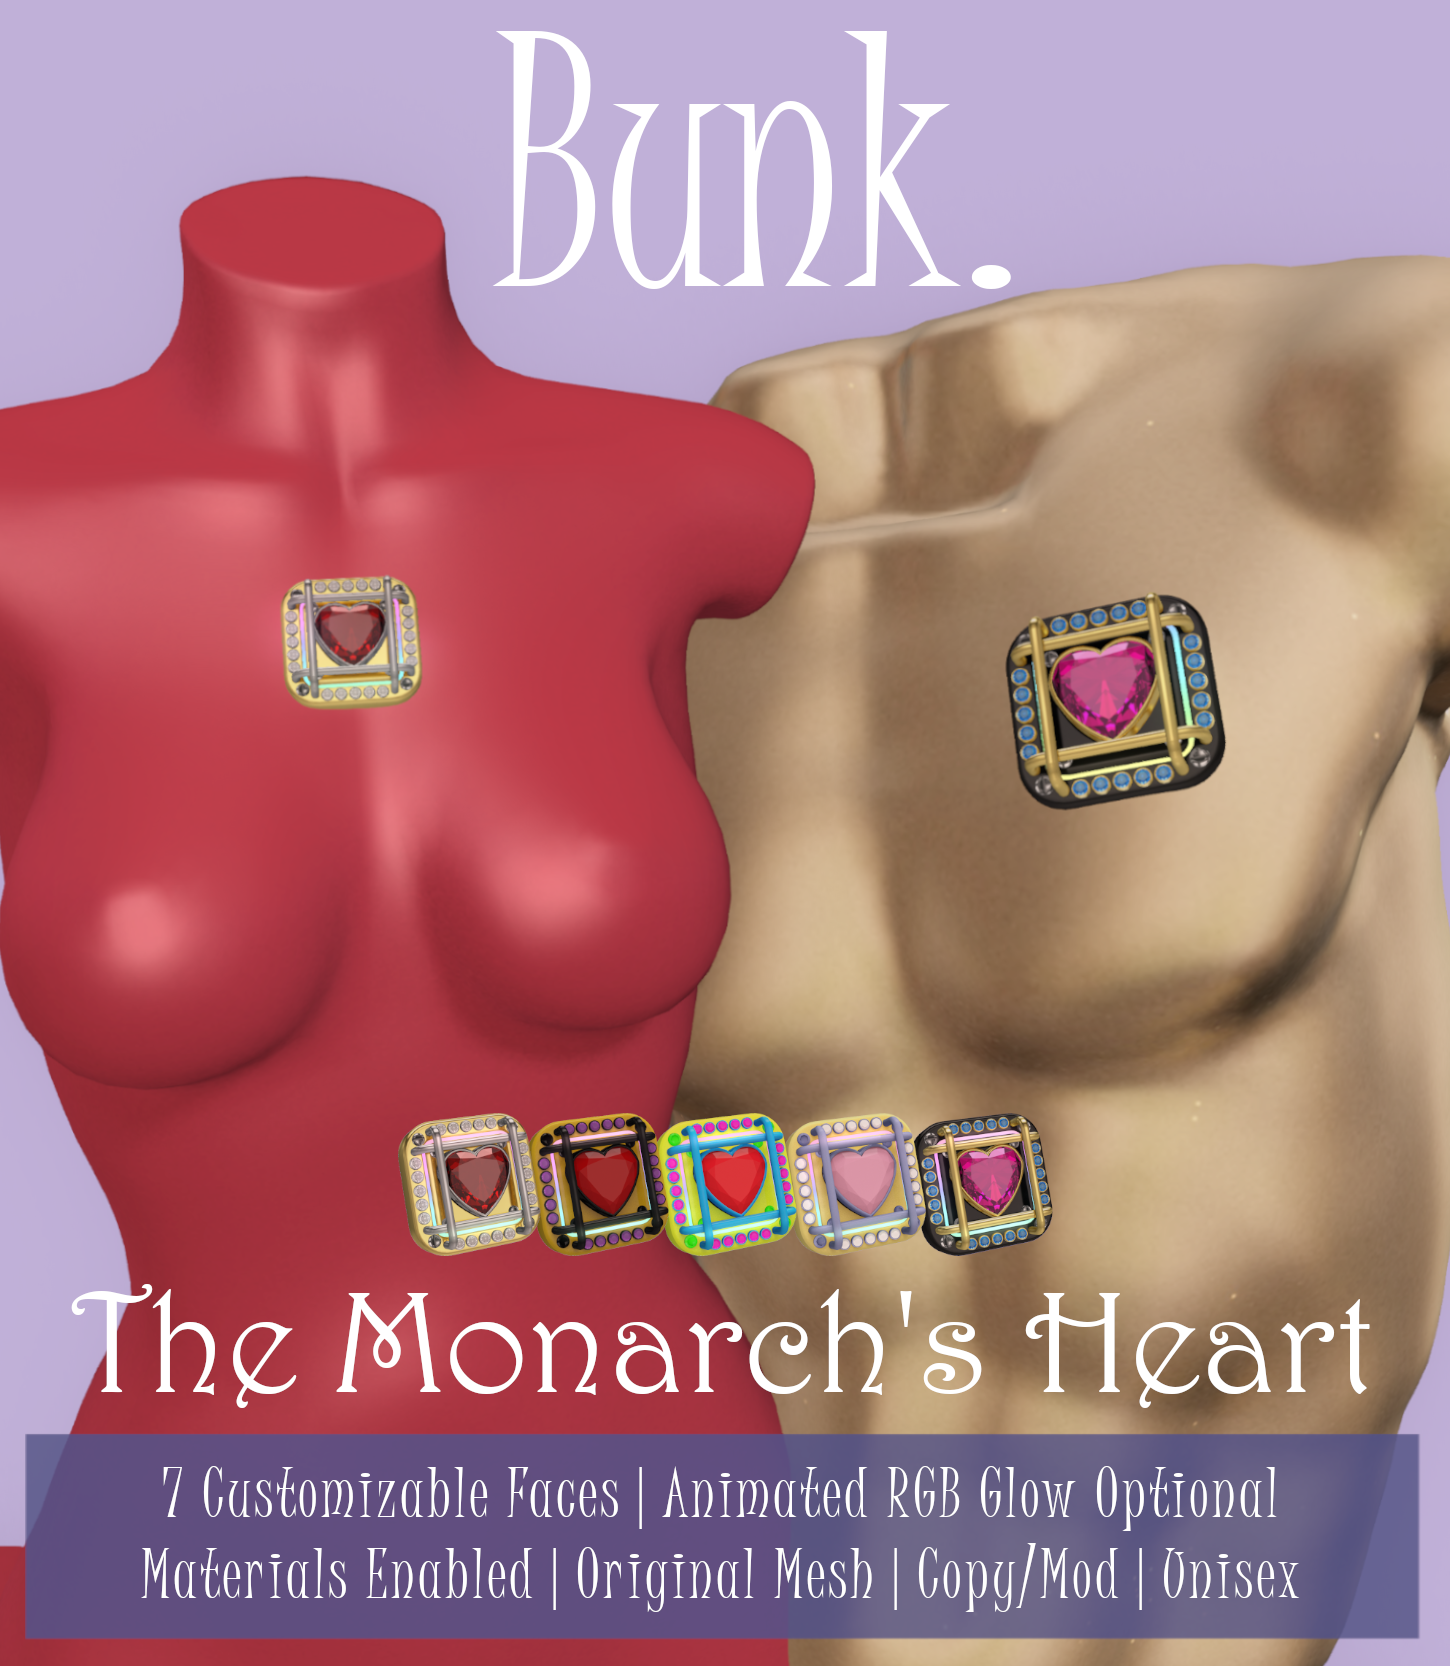 Bunk AD The Monarch_s Heart[3928]